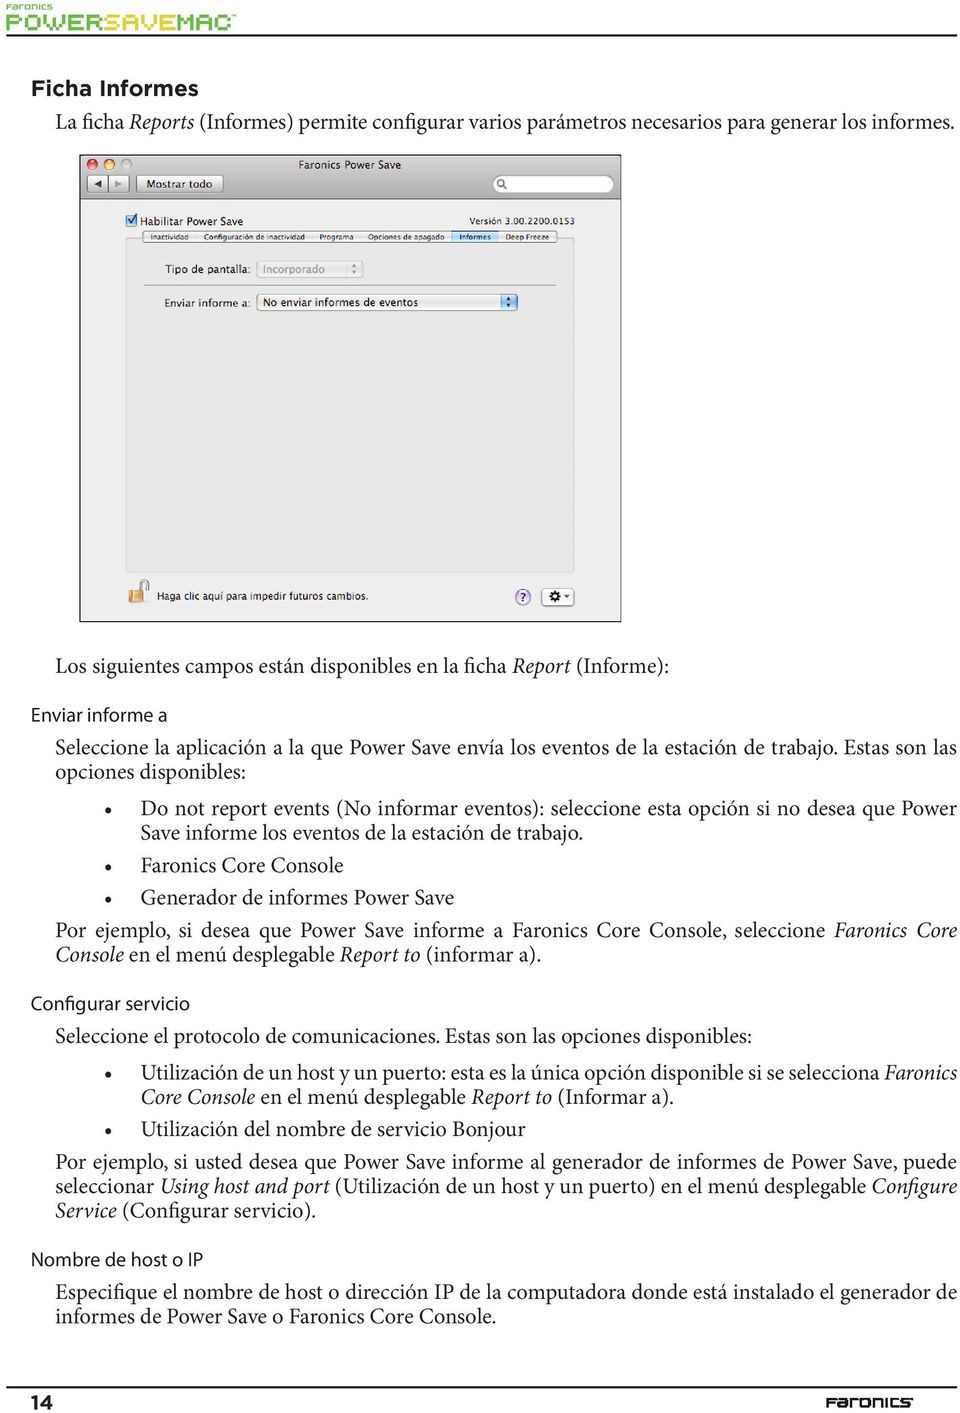 Estas son las opciones disponibles: Do not report events (No informar eventos): seleccione esta opción si no desea que Power Save informe los eventos de la estación de trabajo.